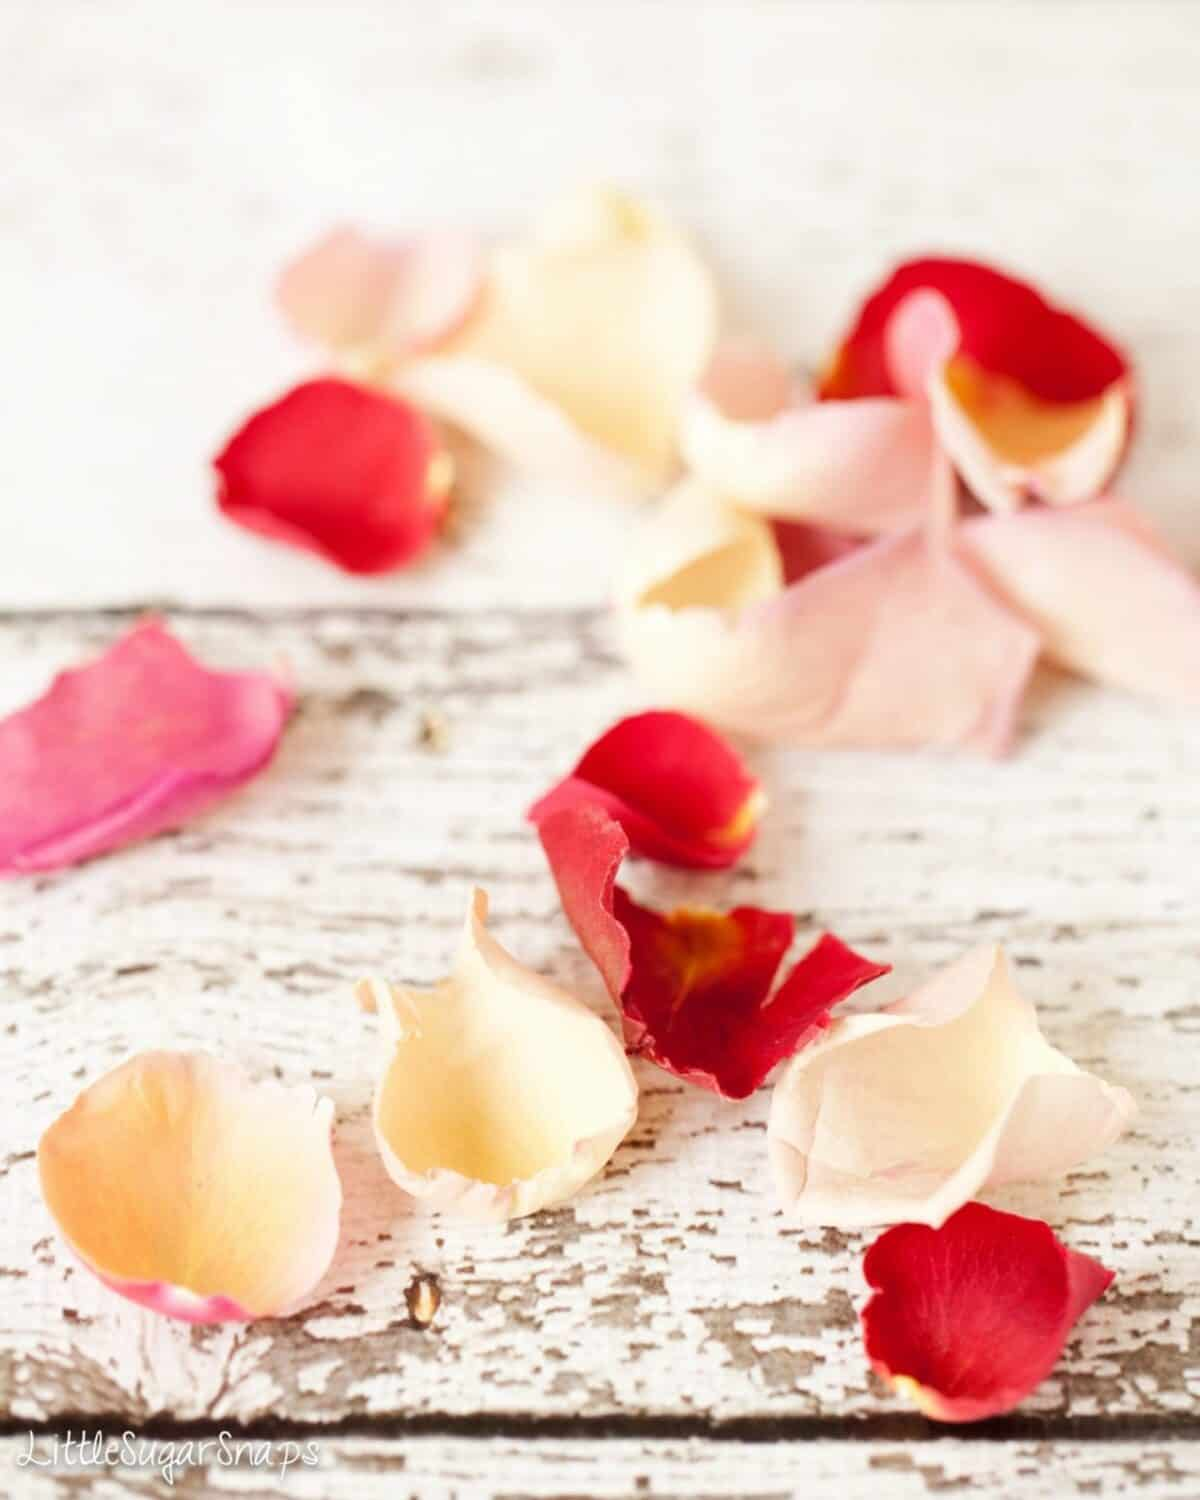 Edible rose petals on a shabby-chic tabletop